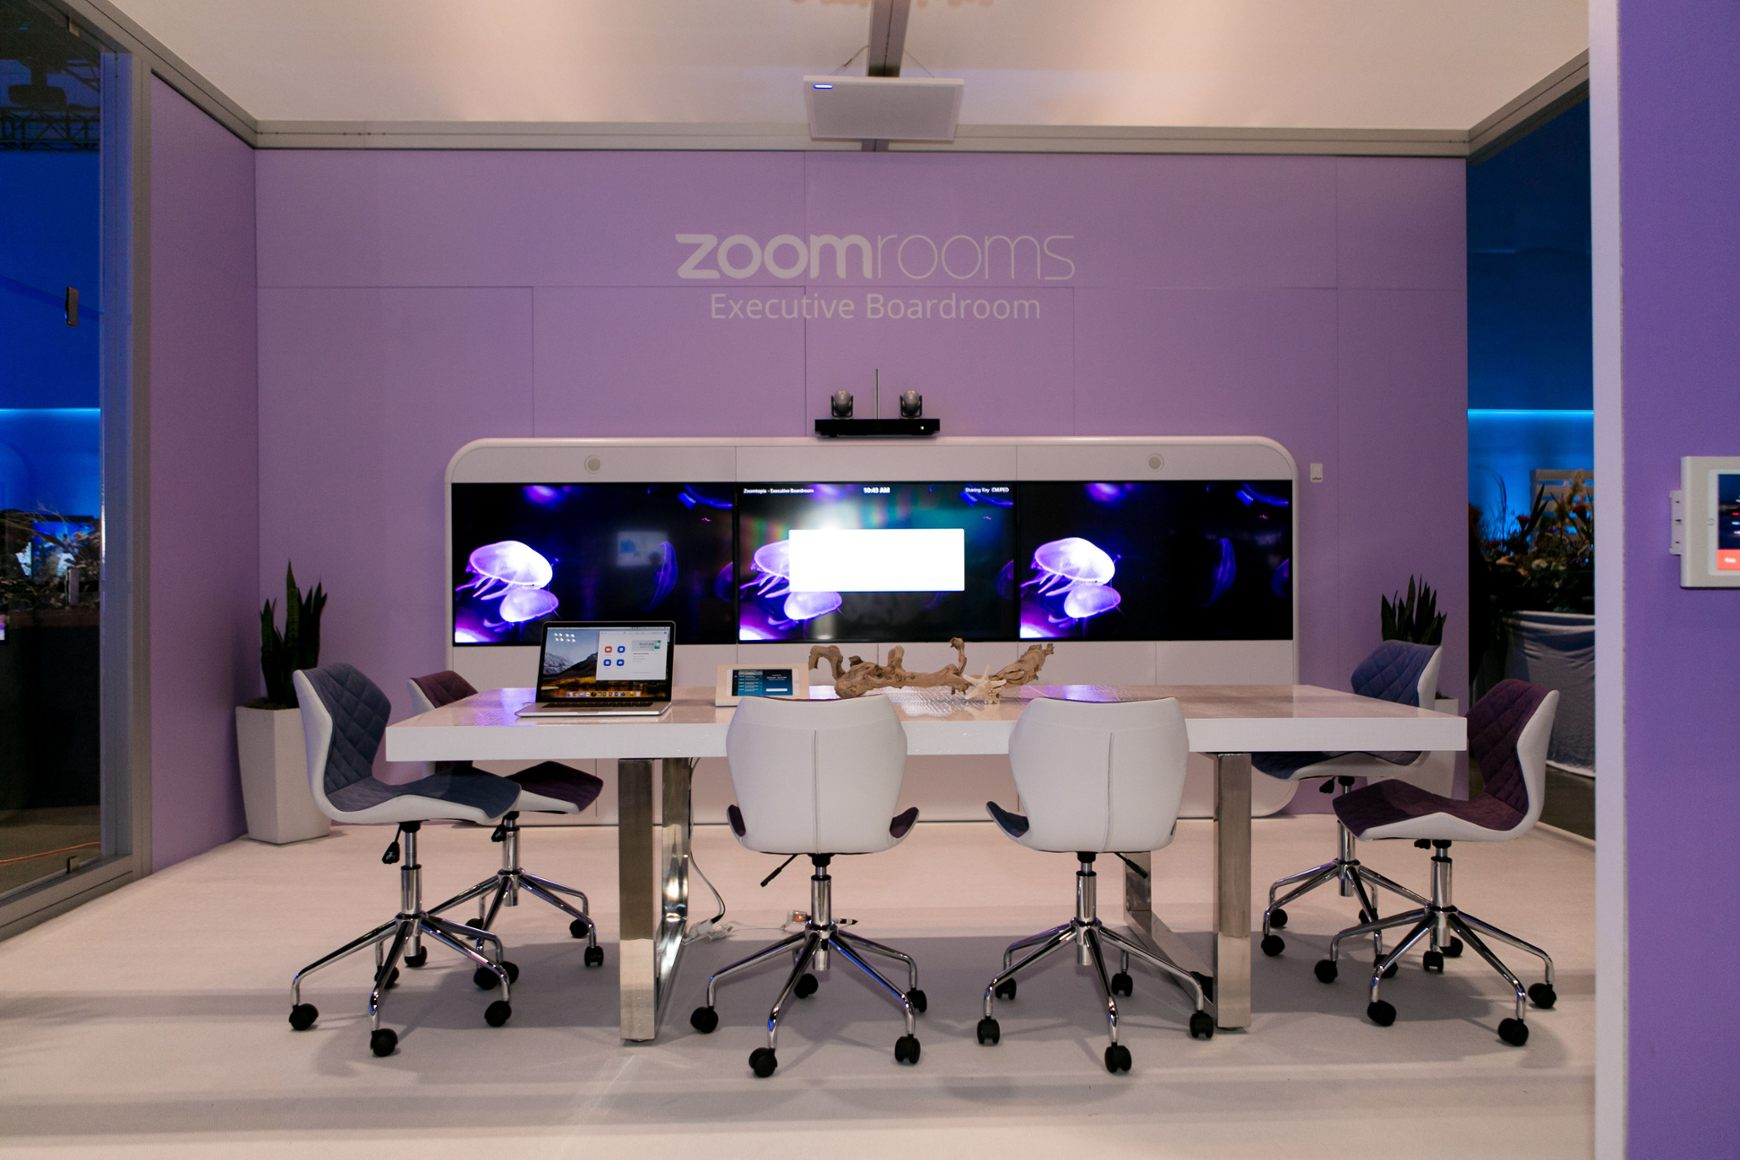 Zoom offers video conferencing solutions for enterprises